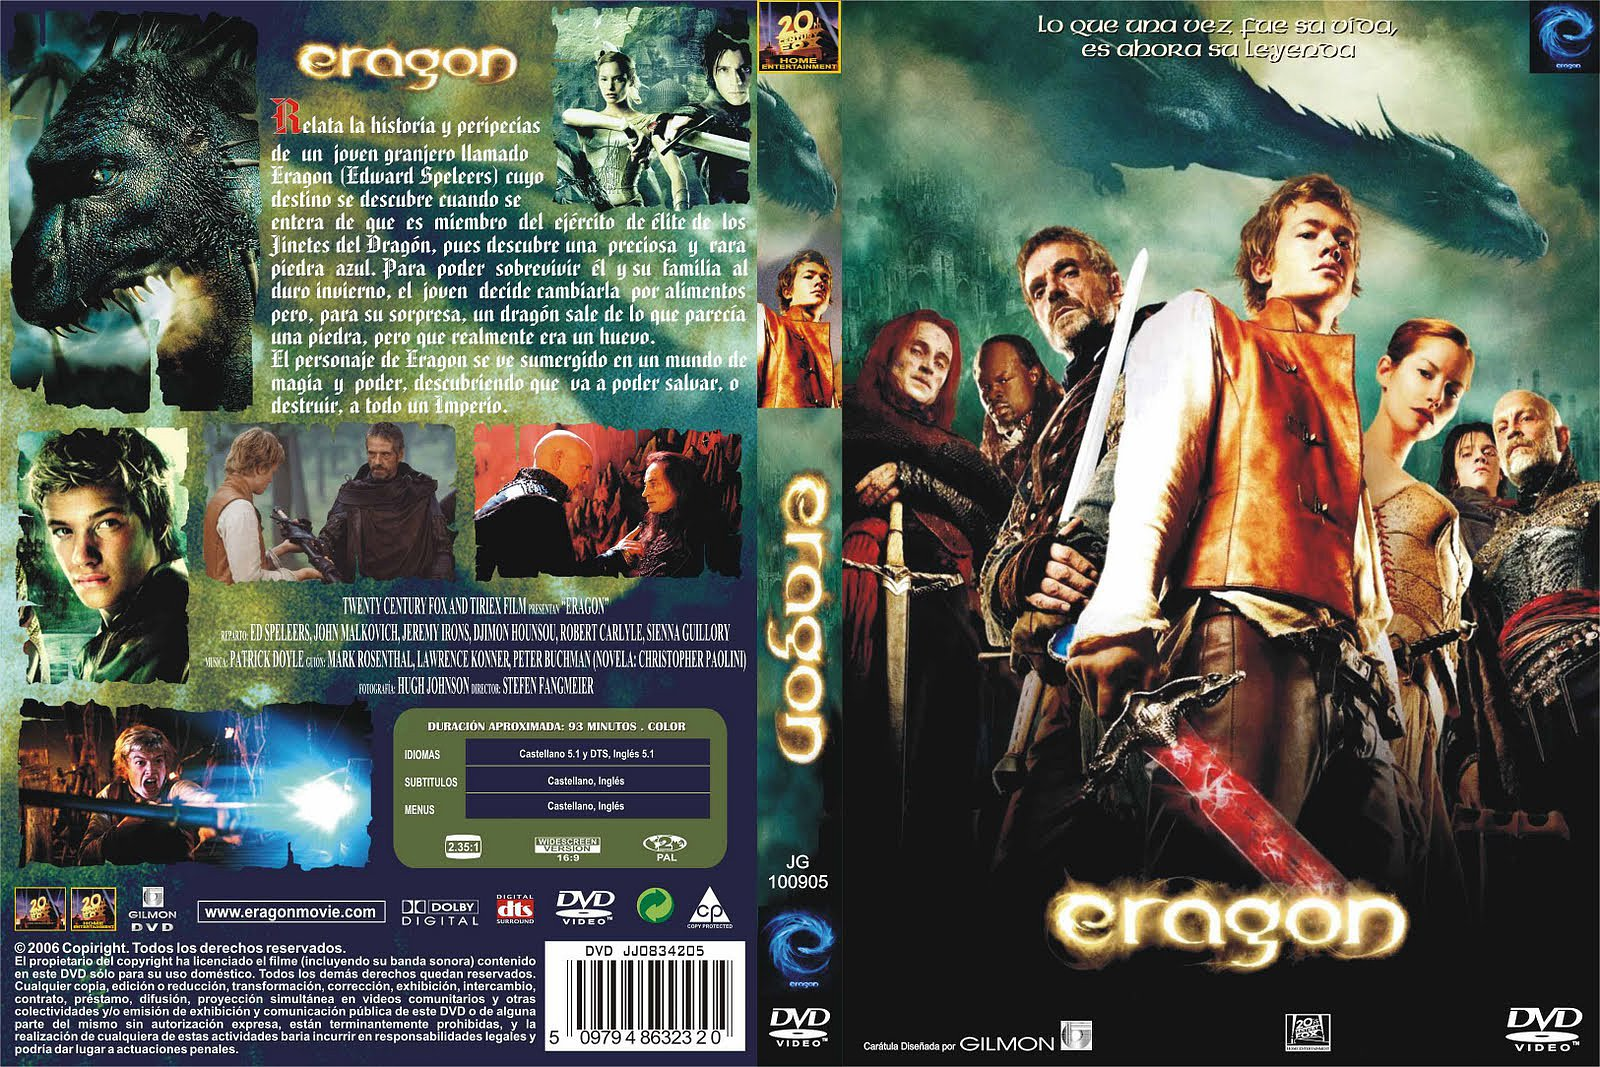 Eragon -2006- [ Mg., Mf. y Sf. ]